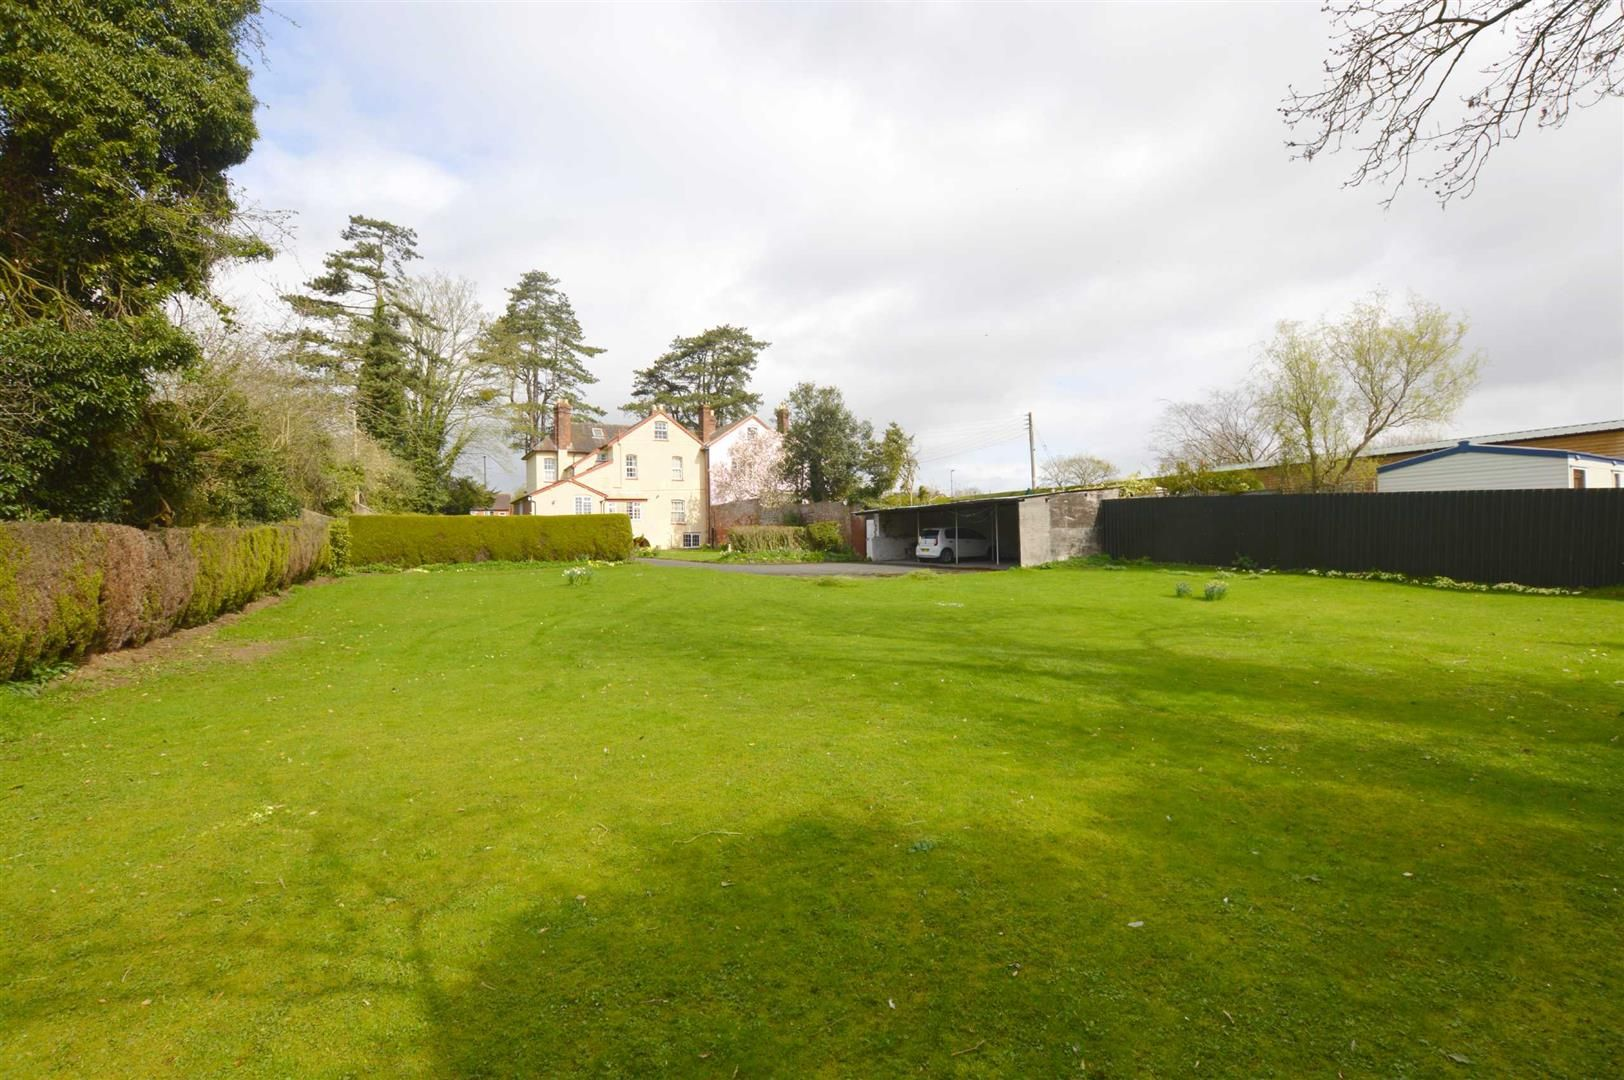 6 bed semi-detached for sale in Leominster 7